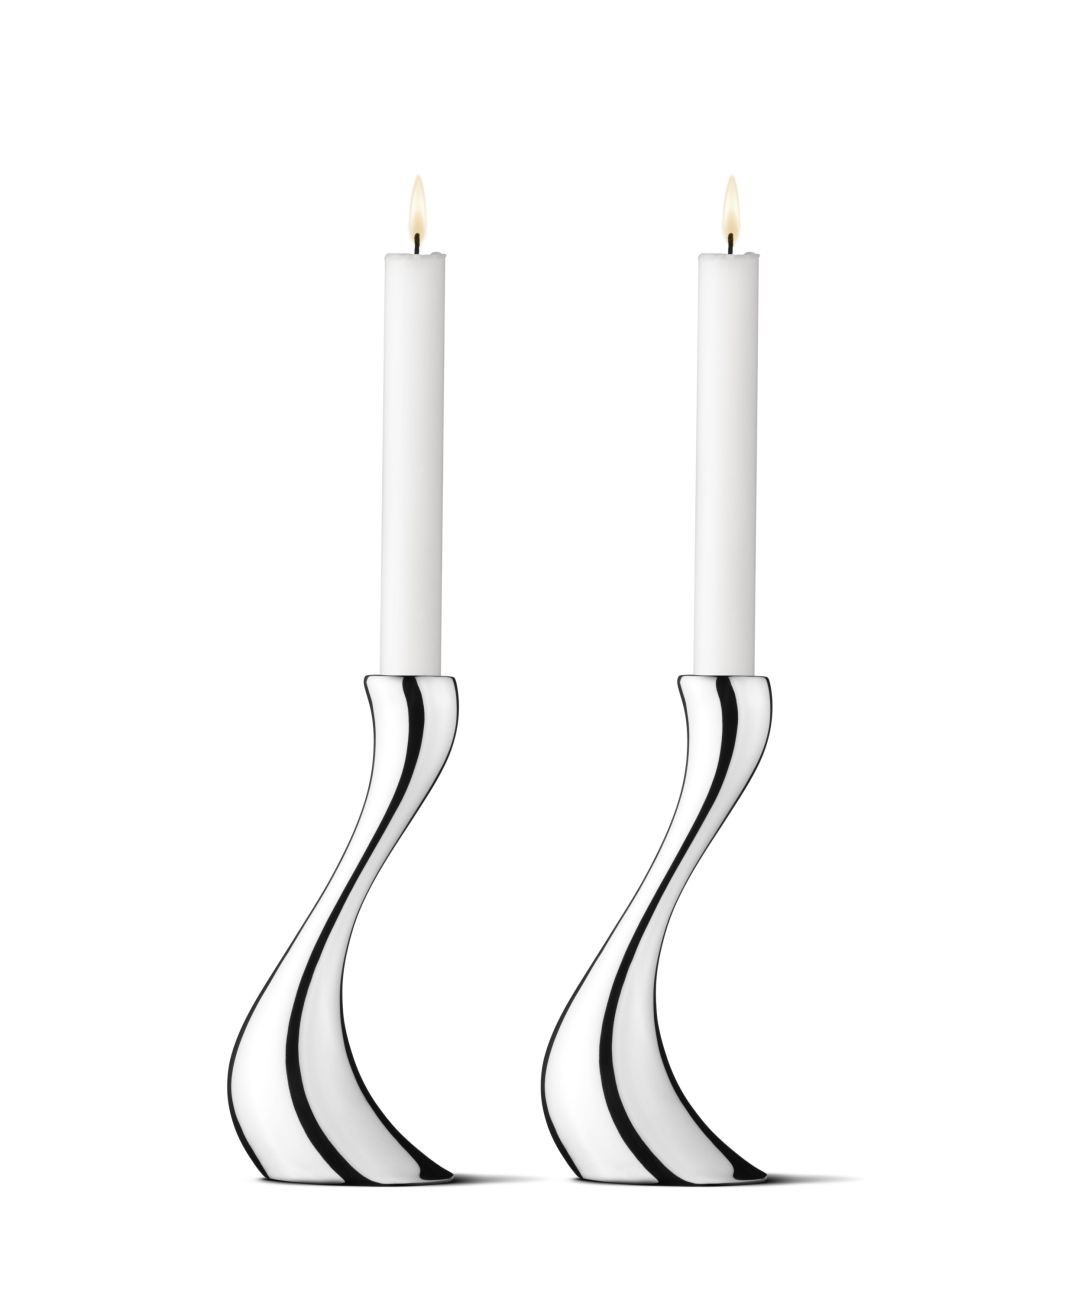 georg jensen cobra kerzenhalter mittel set online kaufen bei woonio. Black Bedroom Furniture Sets. Home Design Ideas